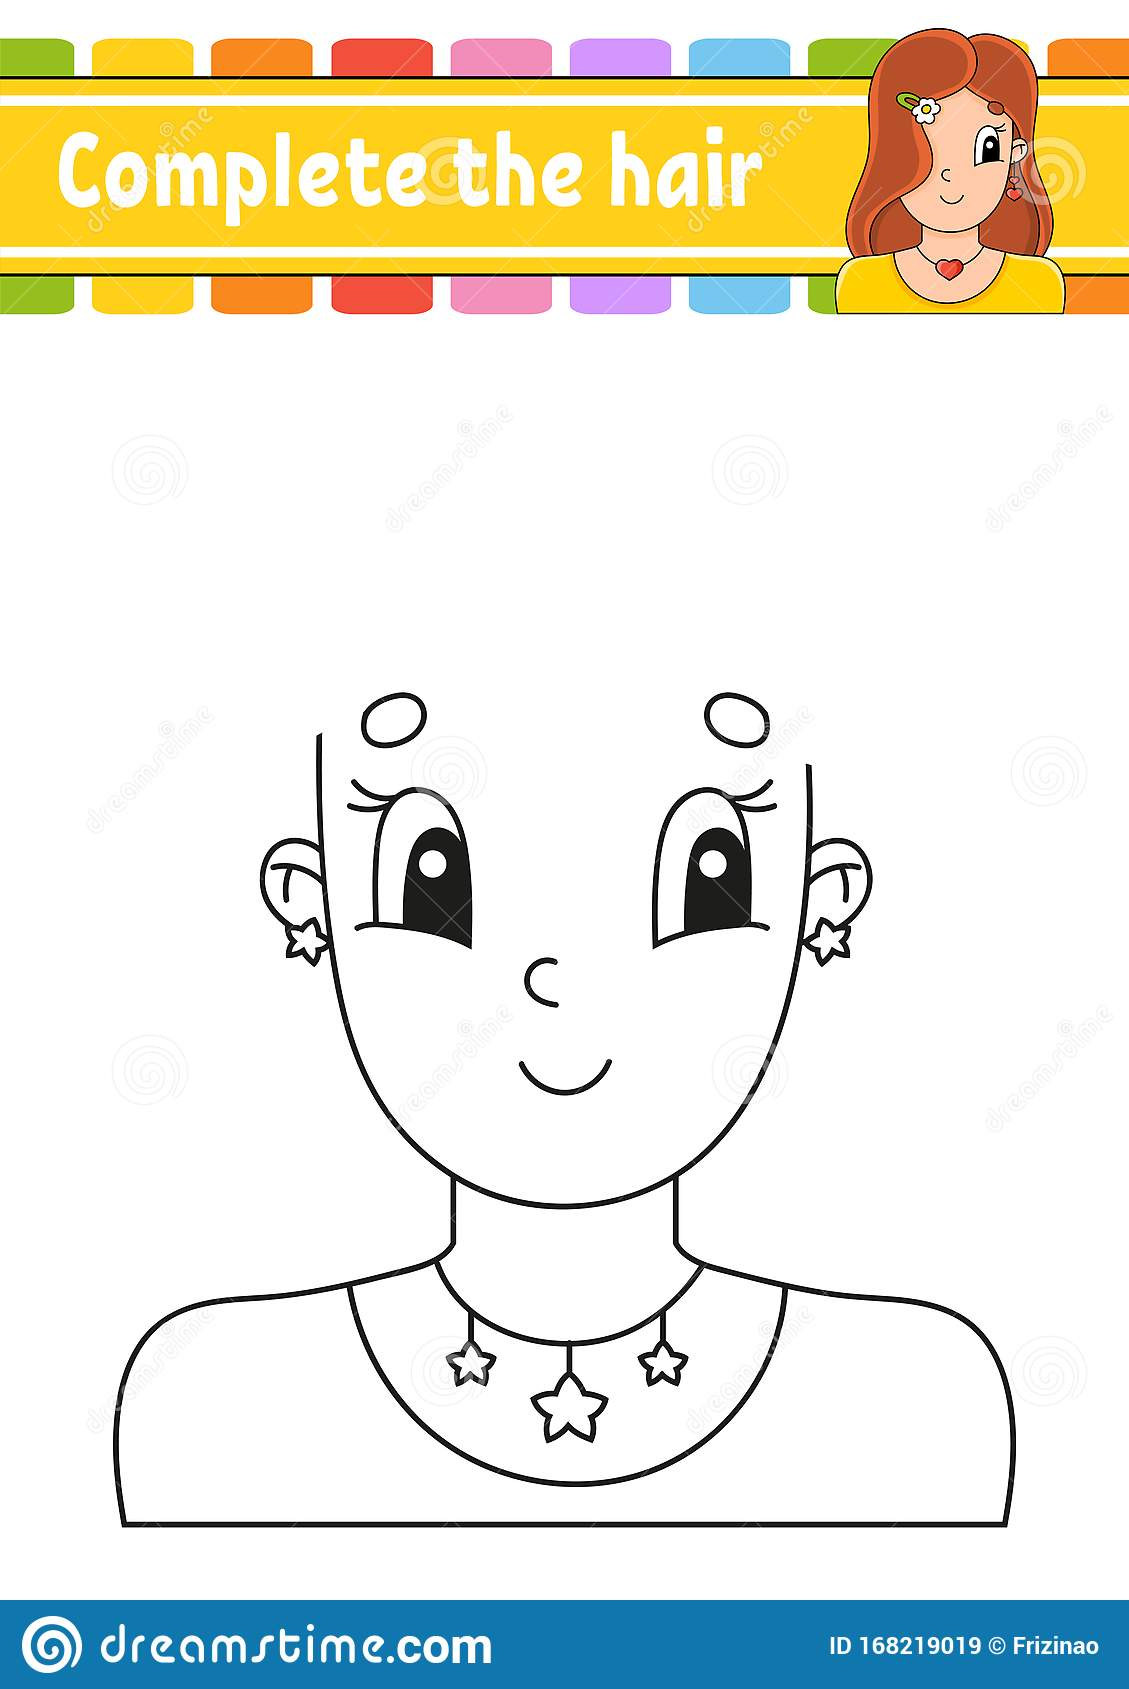 Worksheet Complete The Picture Draw Hair Cheerful Character